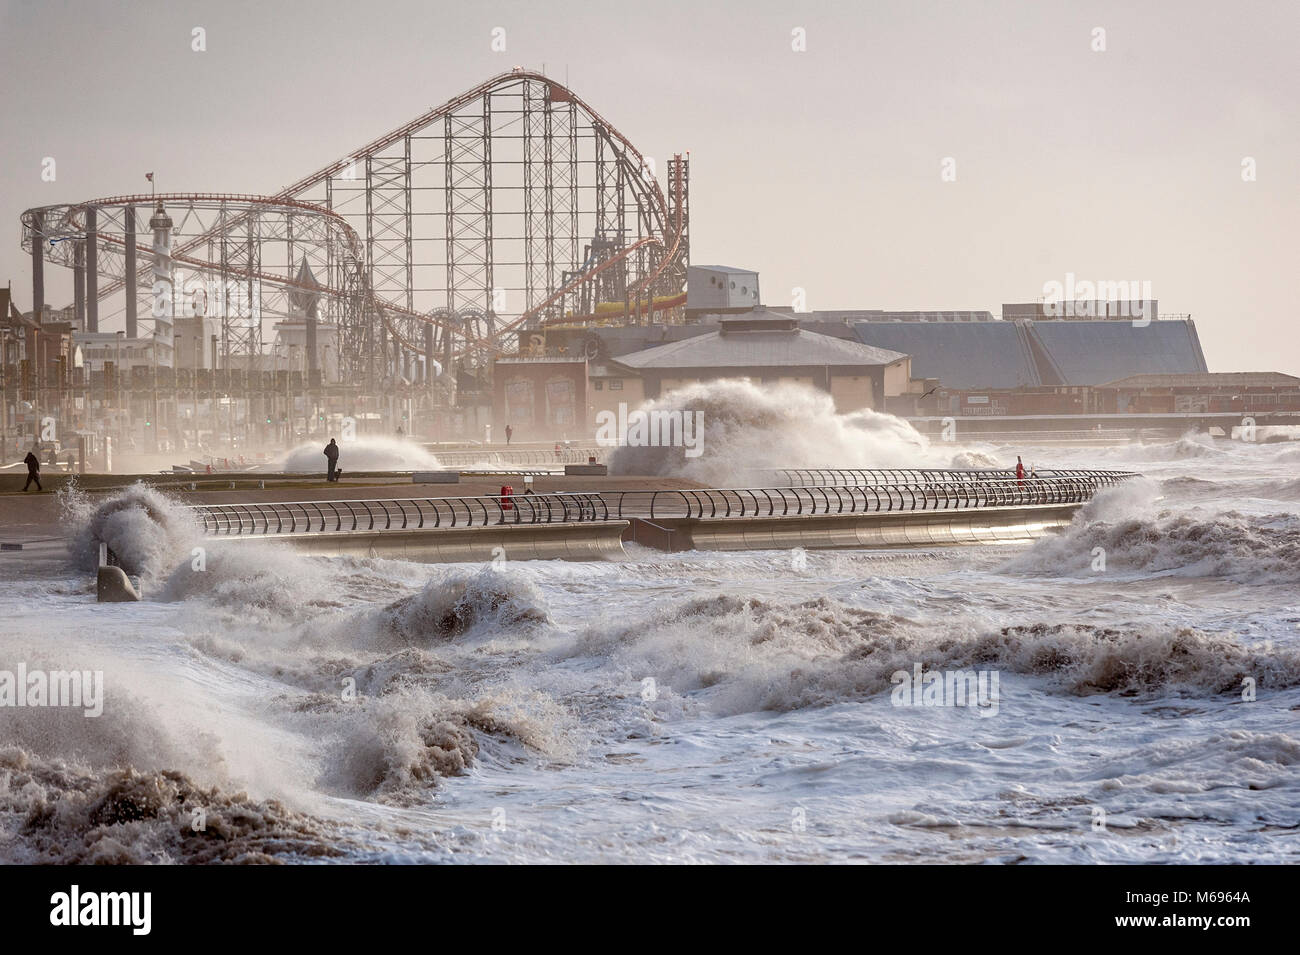 High seas on the North Shore at Blackpool Lancashire UK home of the famous Pleasure Beach - Stock Image